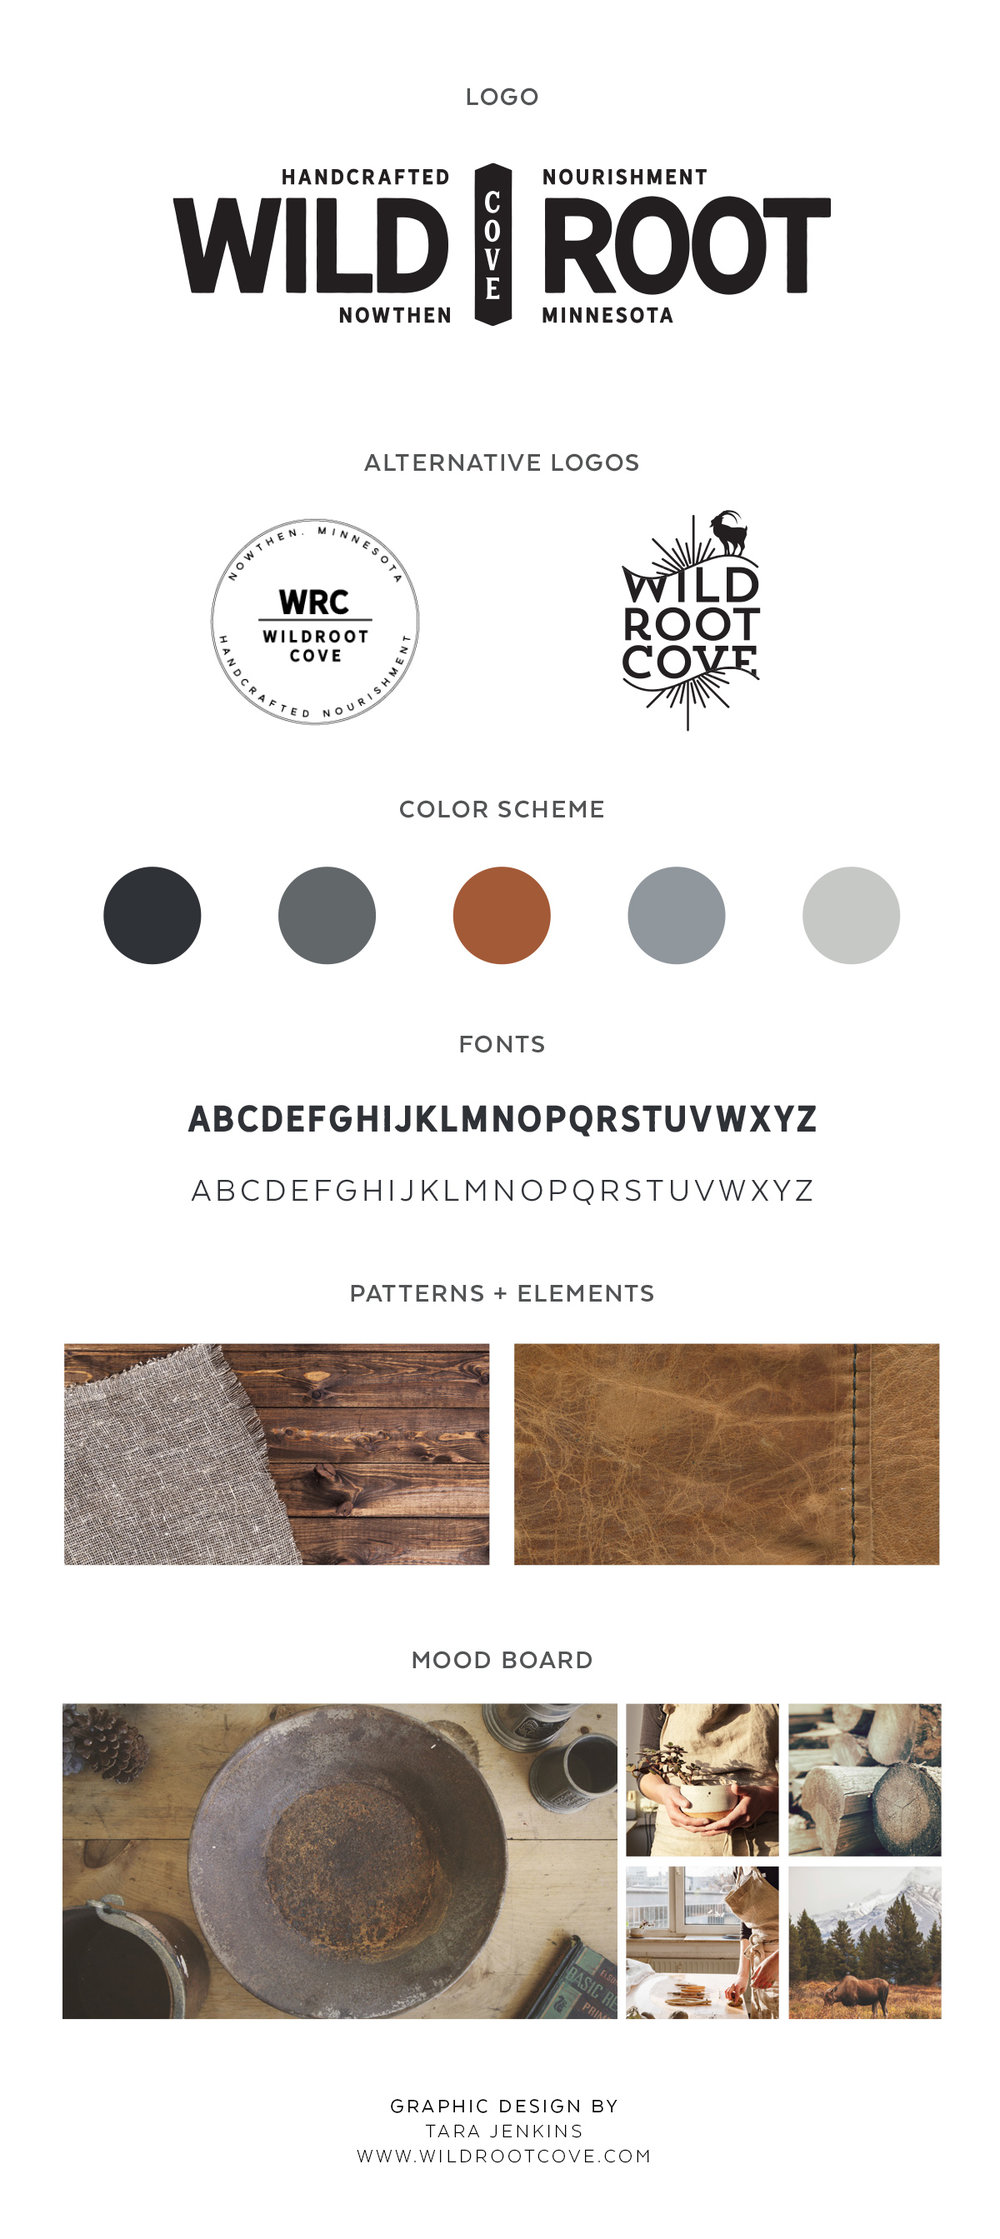 Click this image to view the full Wildroot Cove Branding Board